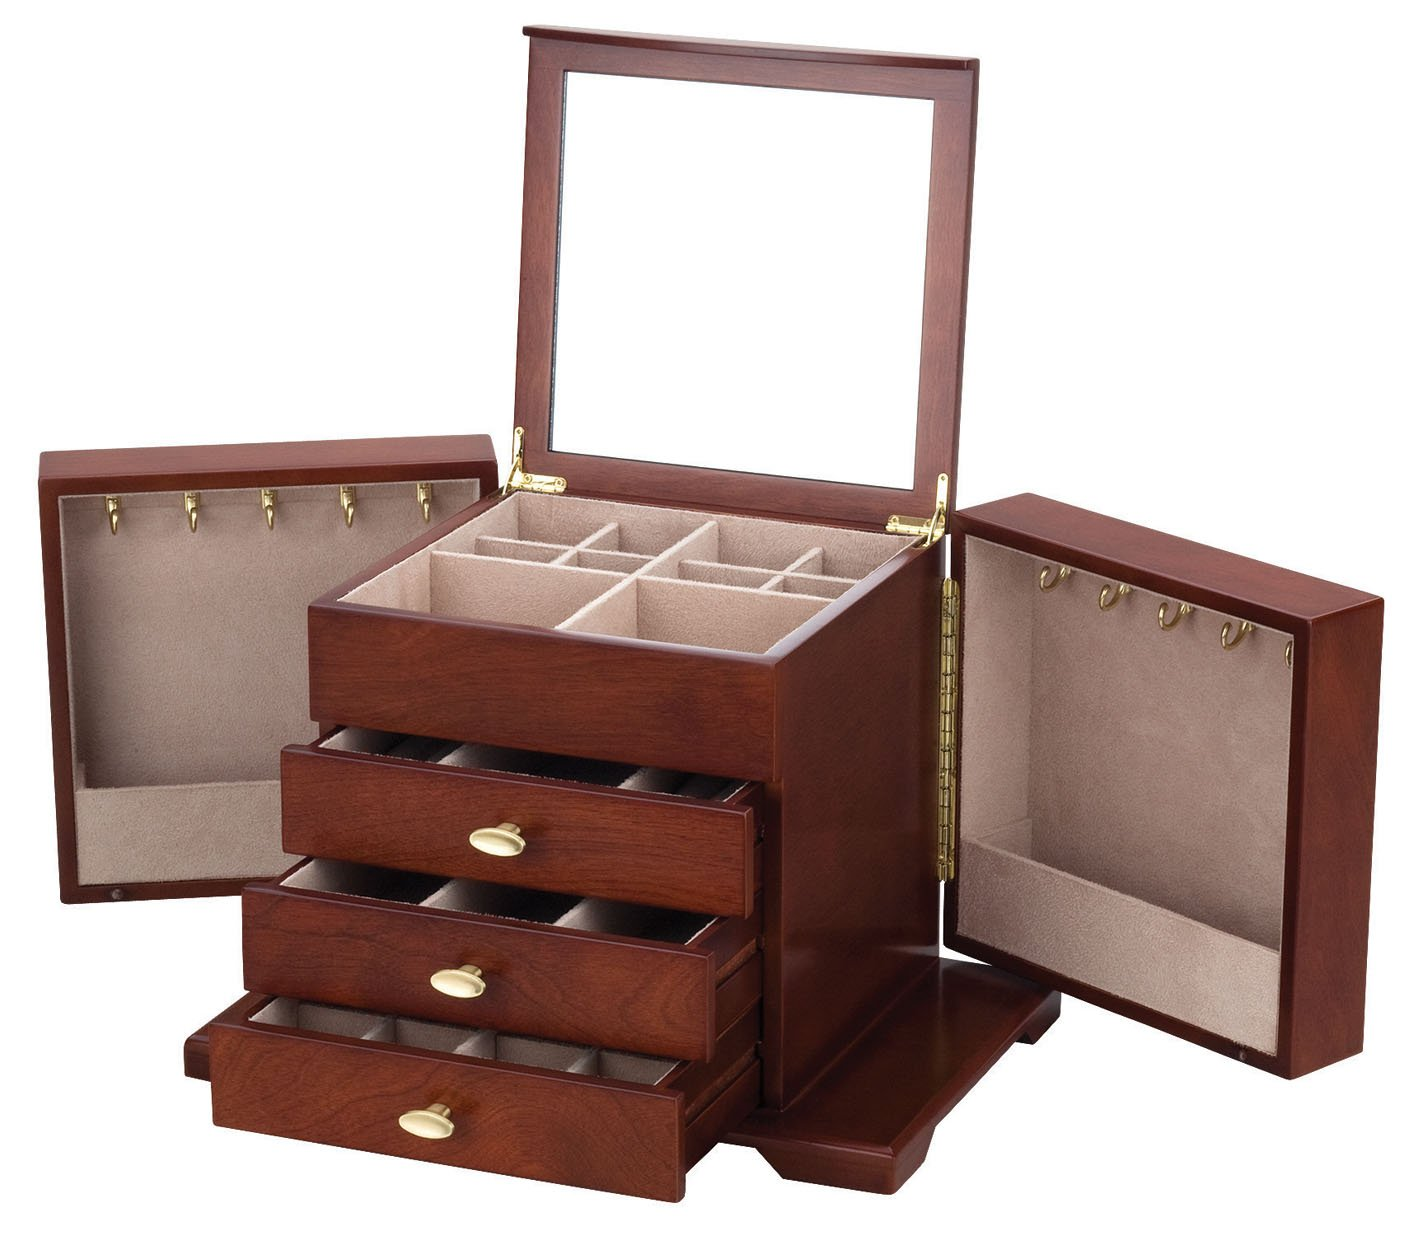 Reed & Barton Amelia Jewelry Chest by Reed & Barton (Image #2)